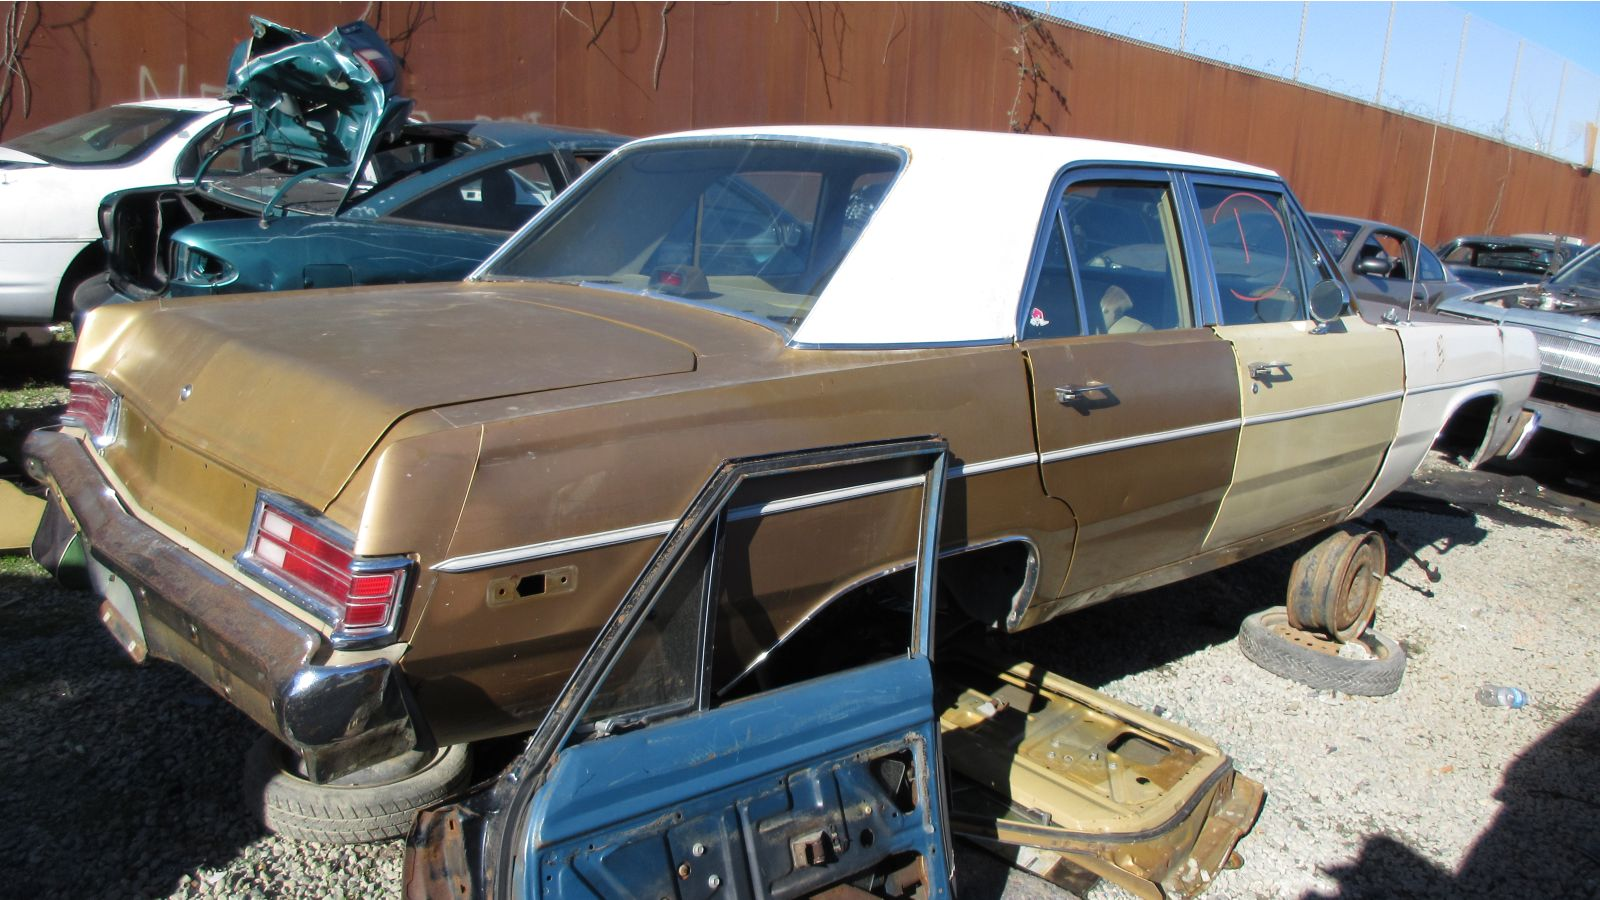 1975 Plymouth Valiant Sedan Junkyard Gem Autoblog 1960 For Sale The Multicolored Front Body Parts Indicate That This Car Got Crashed Then Fixed With You Can Get Fairly Solid Running Sedans And